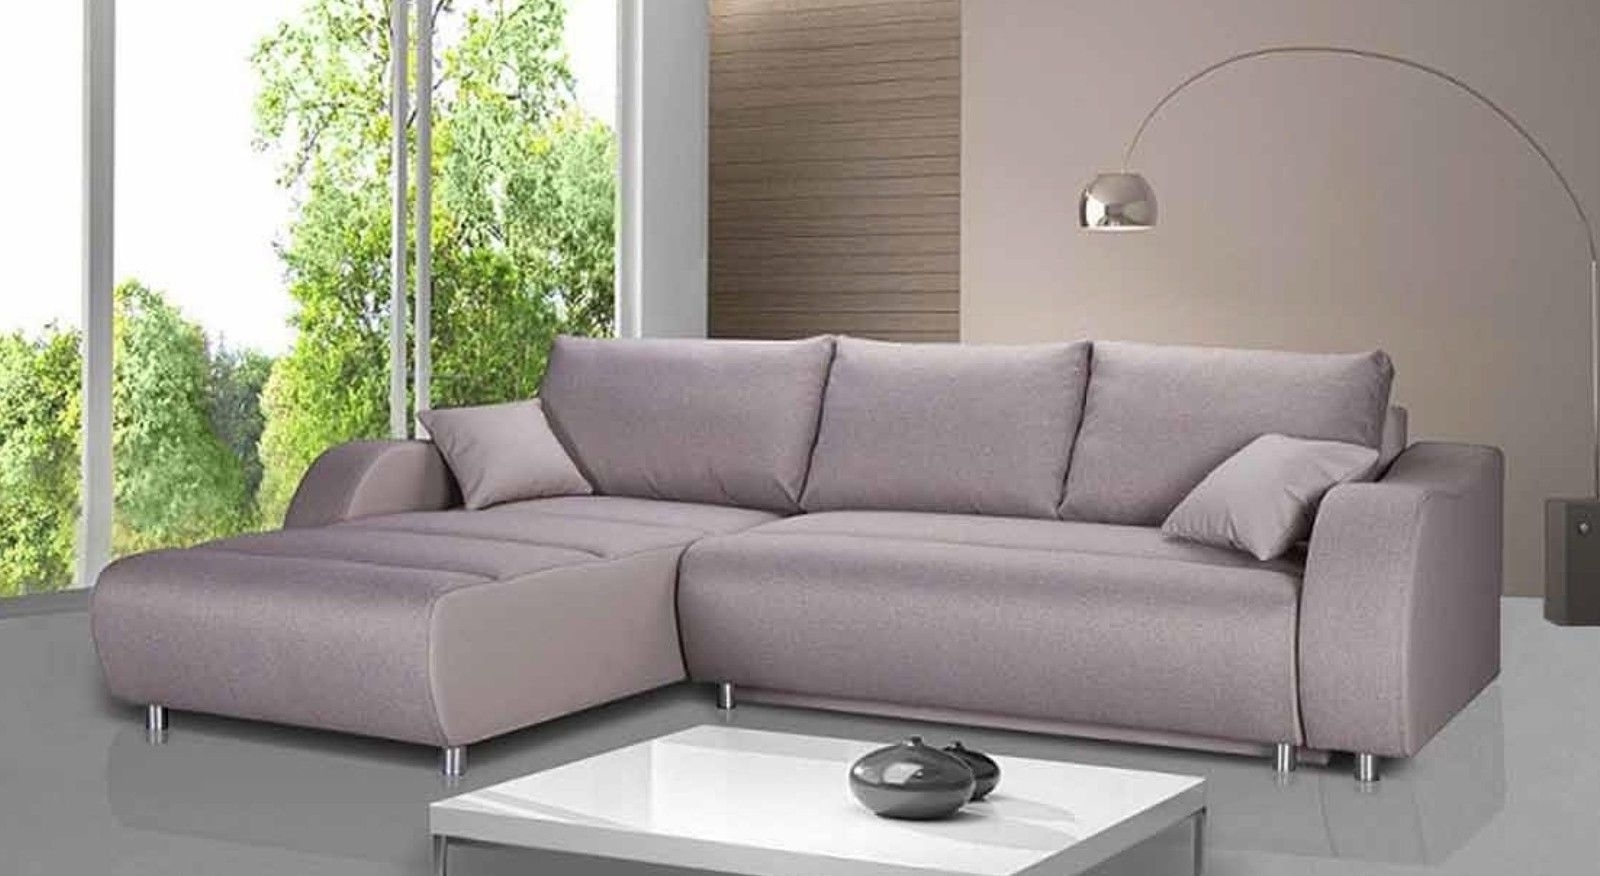 Awesome Modular Corner Sofas Uk – Mediasupload With Regard To Popular Modular Corner Sofas (View 2 of 20)